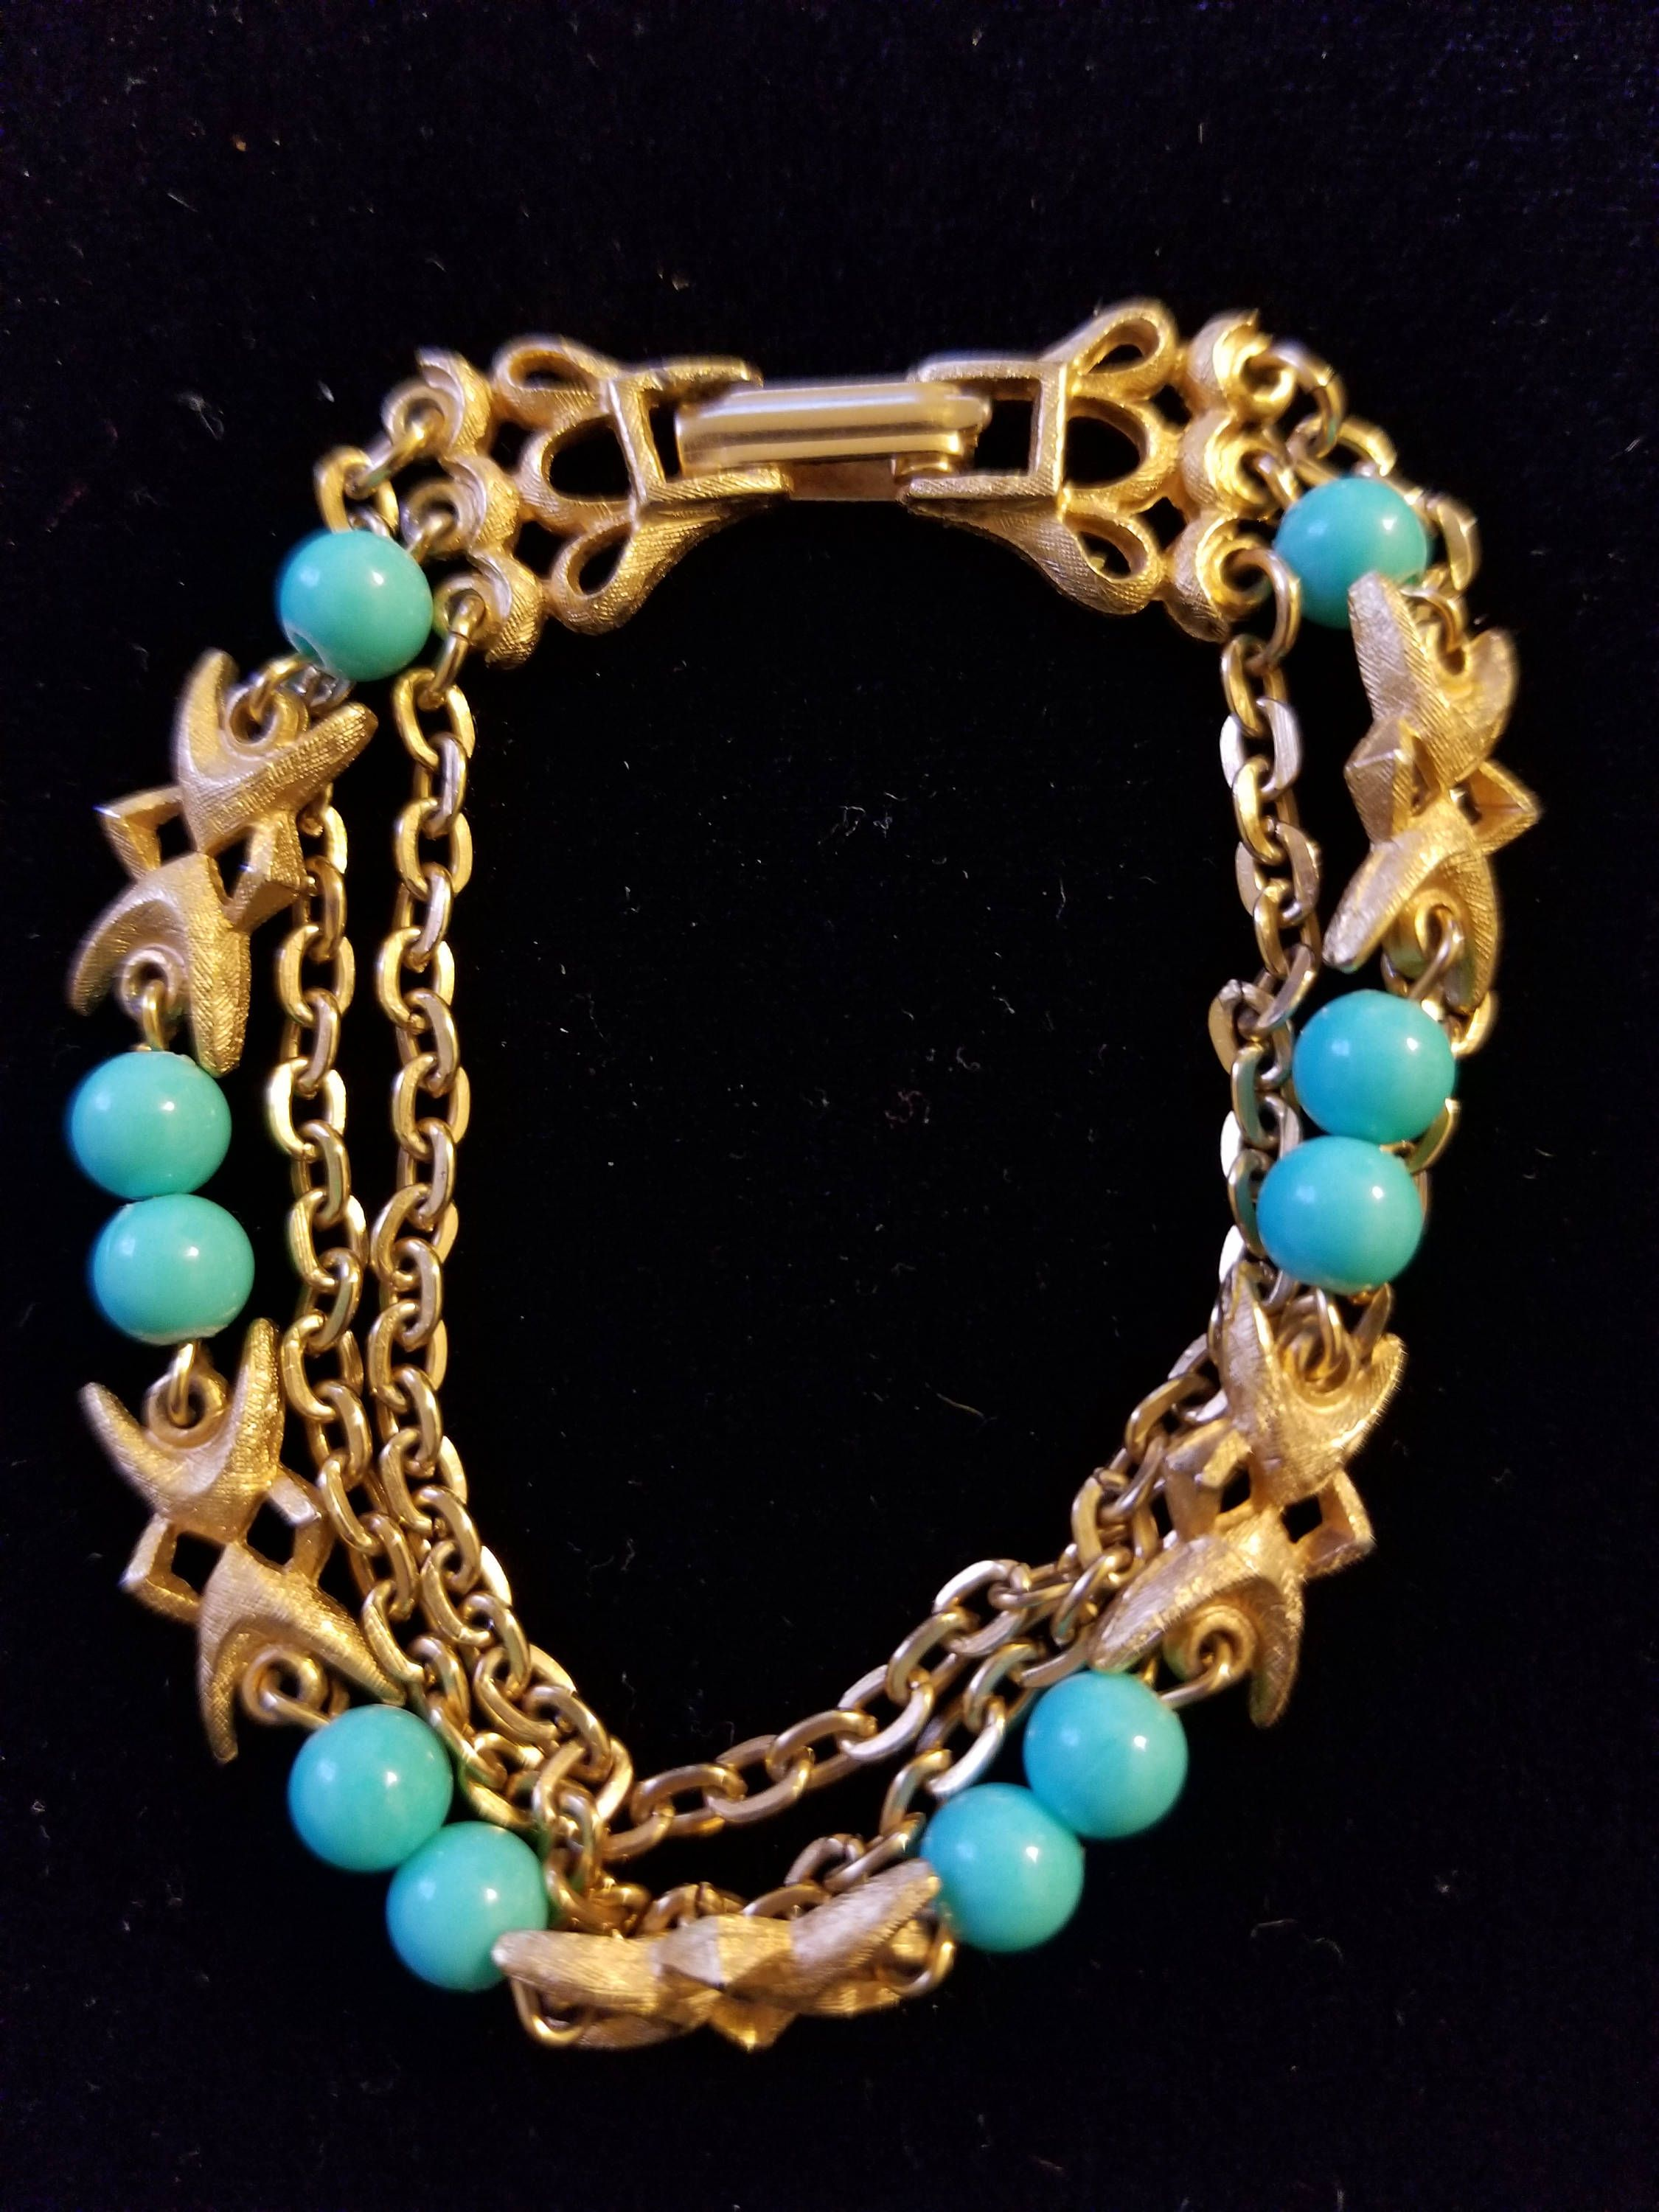 1b7fa16ad86f9 Turquoise and gold toned bracelet. Vintage colored beads and two ...